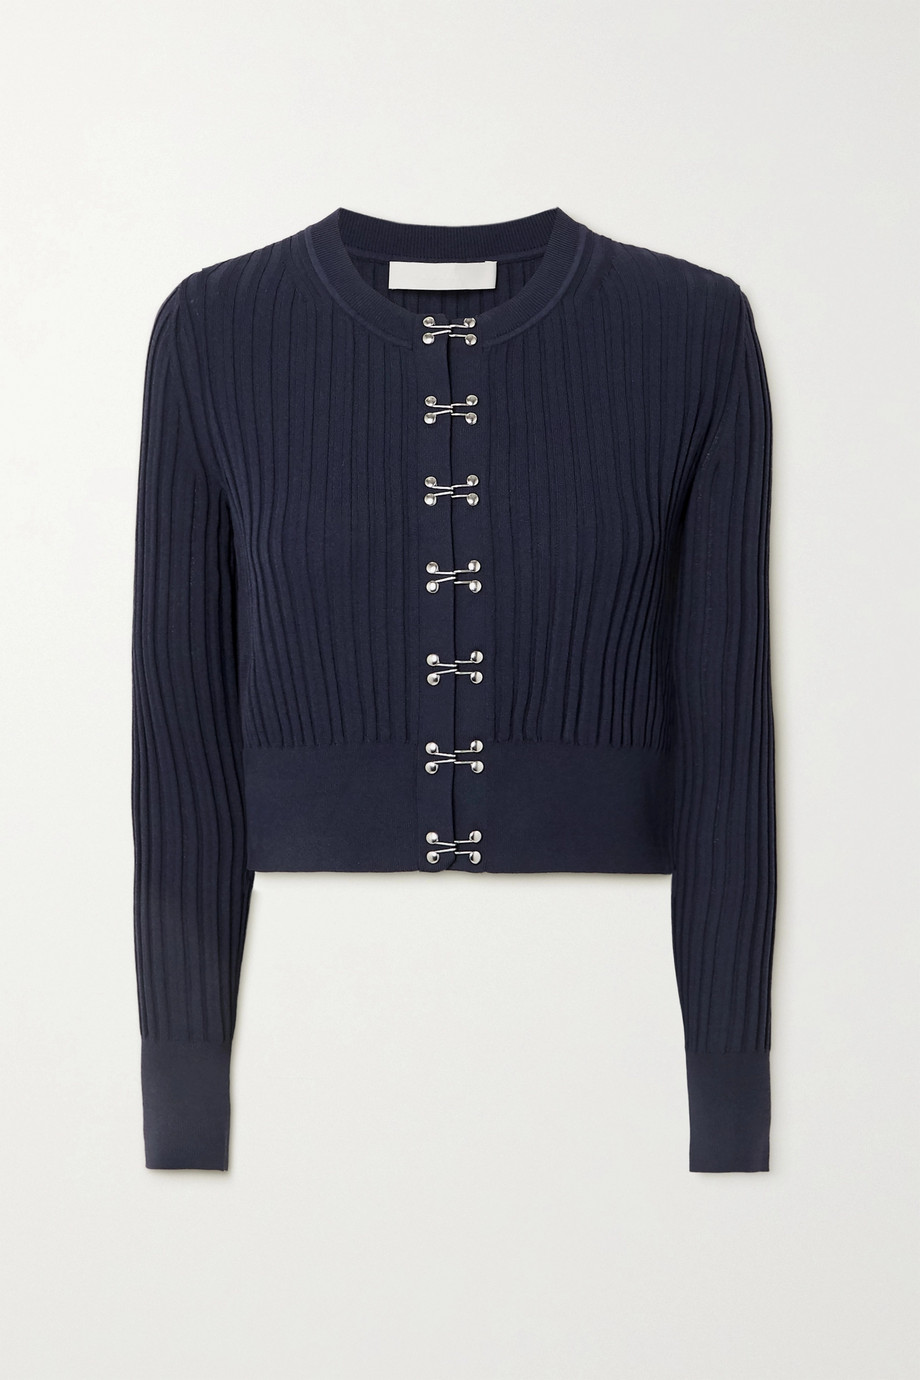 DION LEE Cropped ribbed-knit cardigan